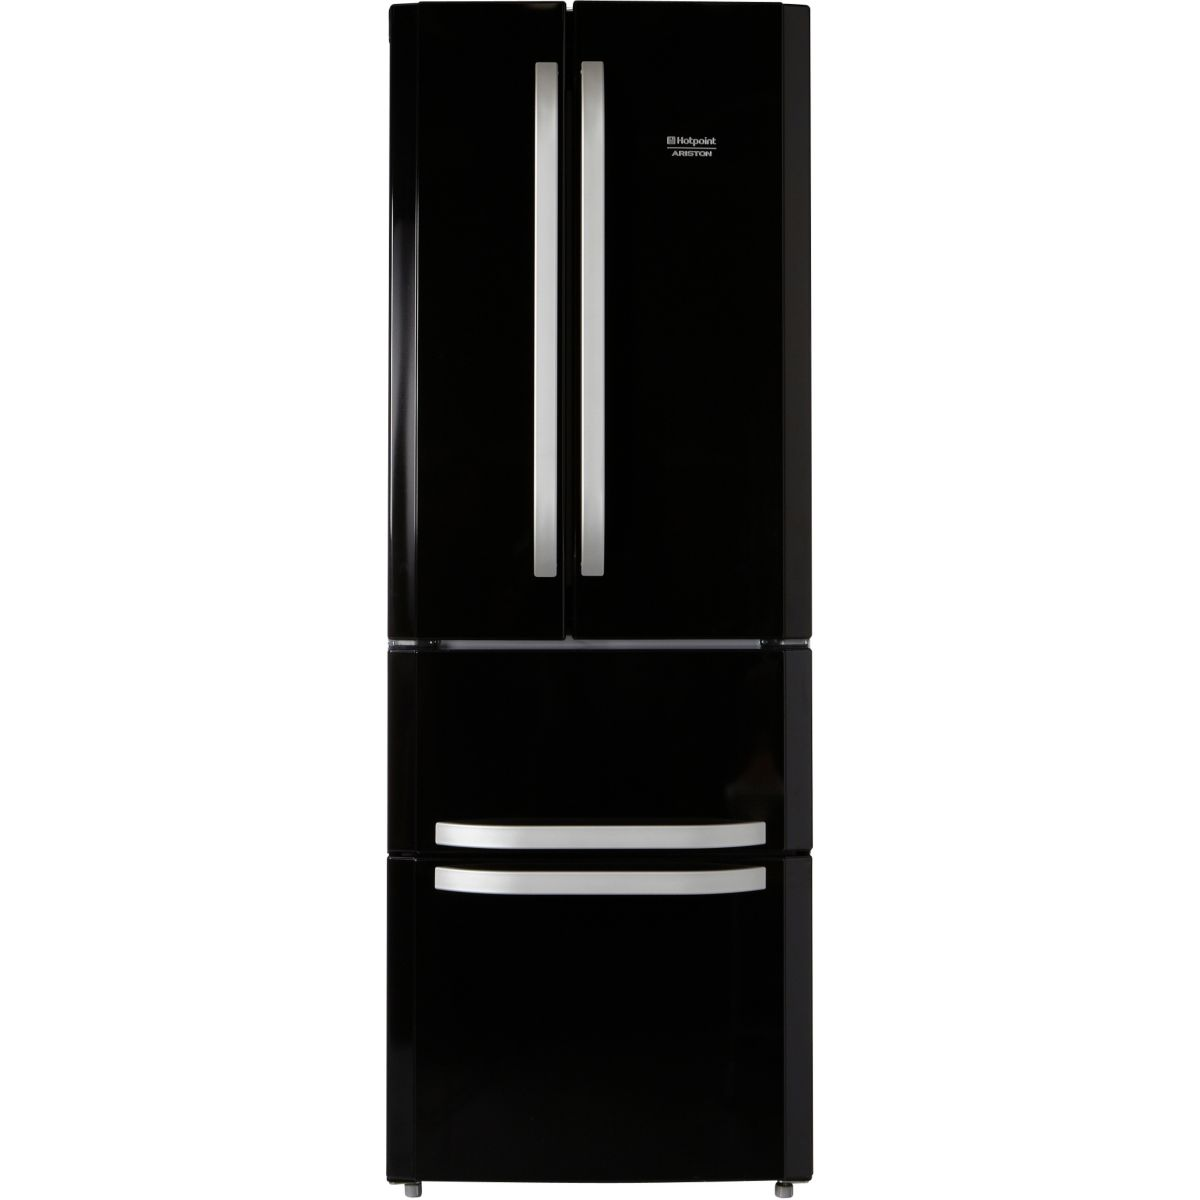 hotpoint achat vente de hotpoint pas cher. Black Bedroom Furniture Sets. Home Design Ideas